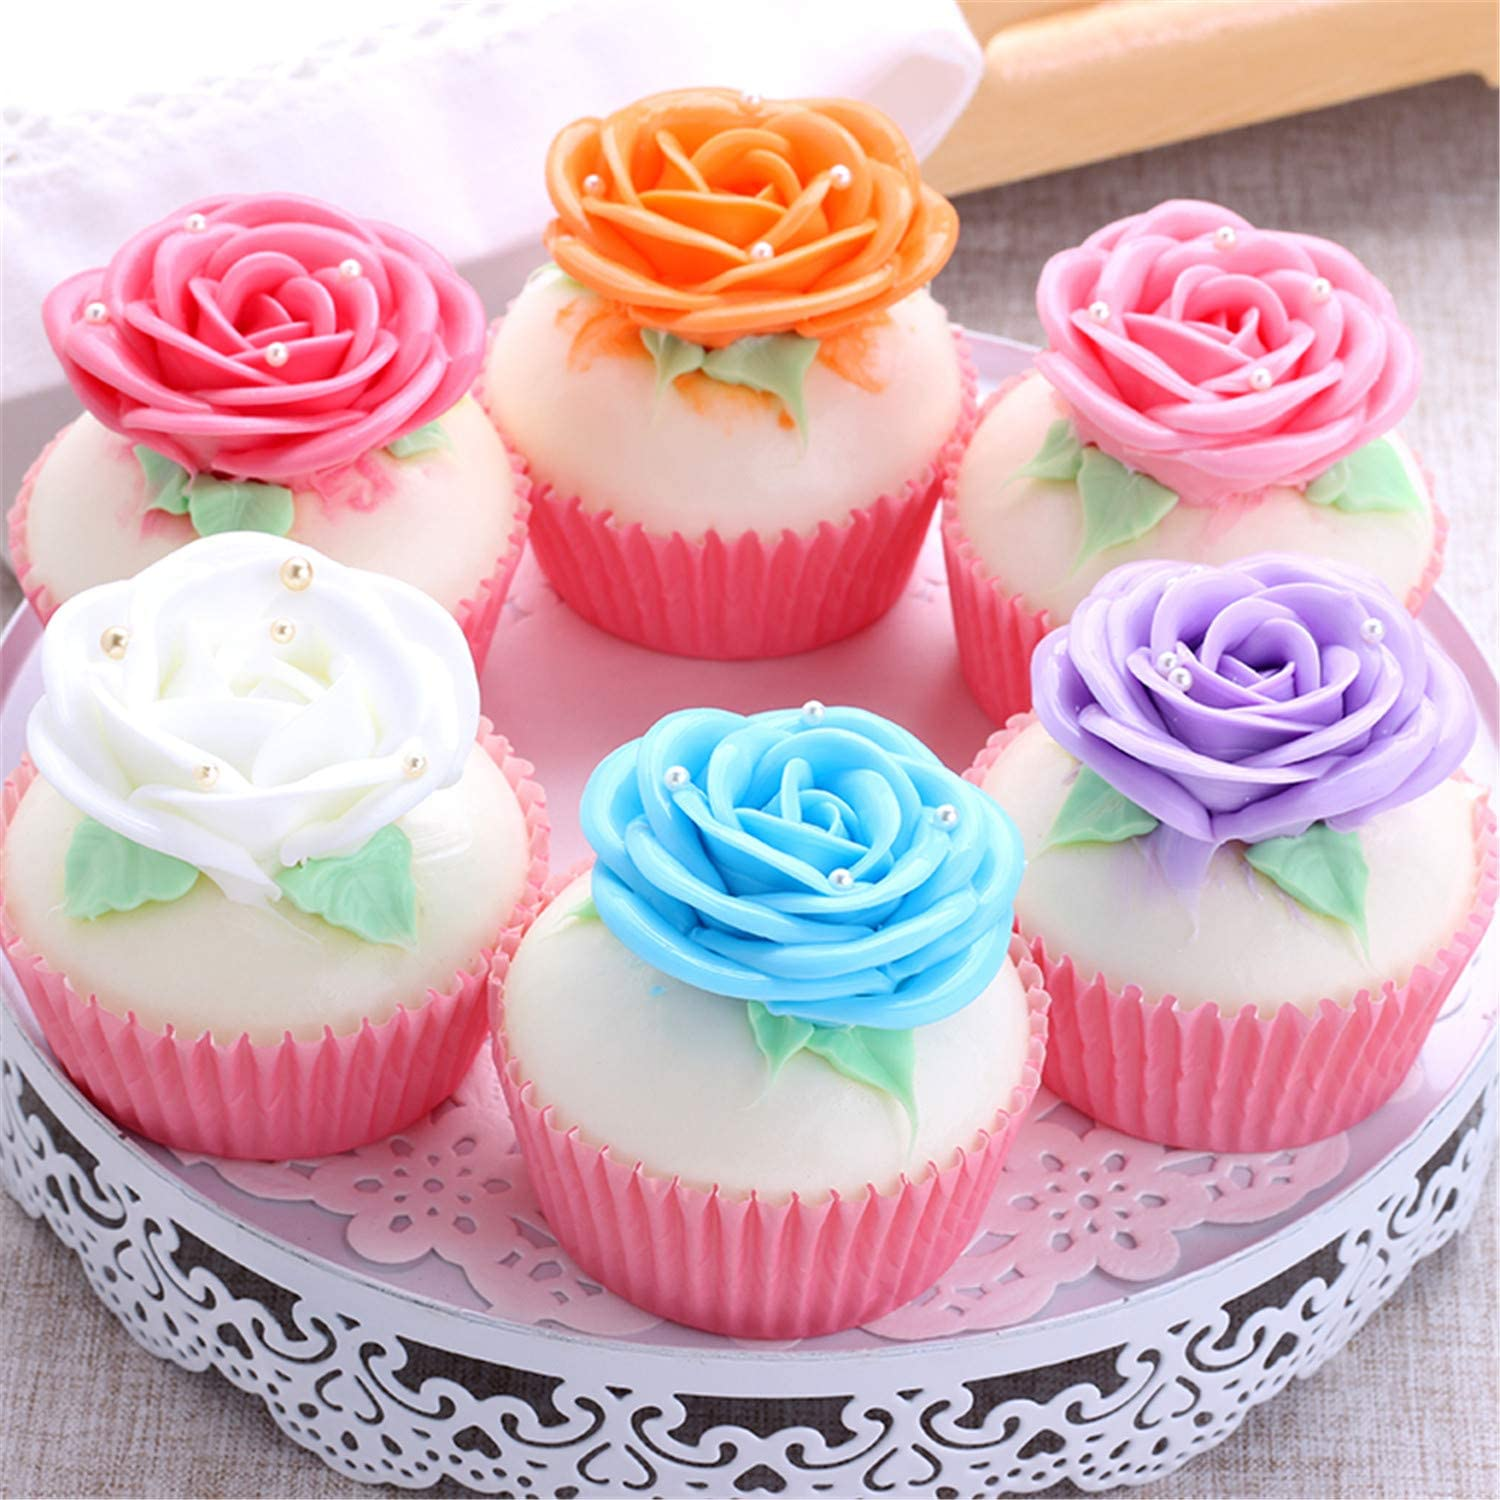 Skyseen 6 PCS Realistic Artificial Rose Cupcake Model Fake Cake Model Photography Props Decoration